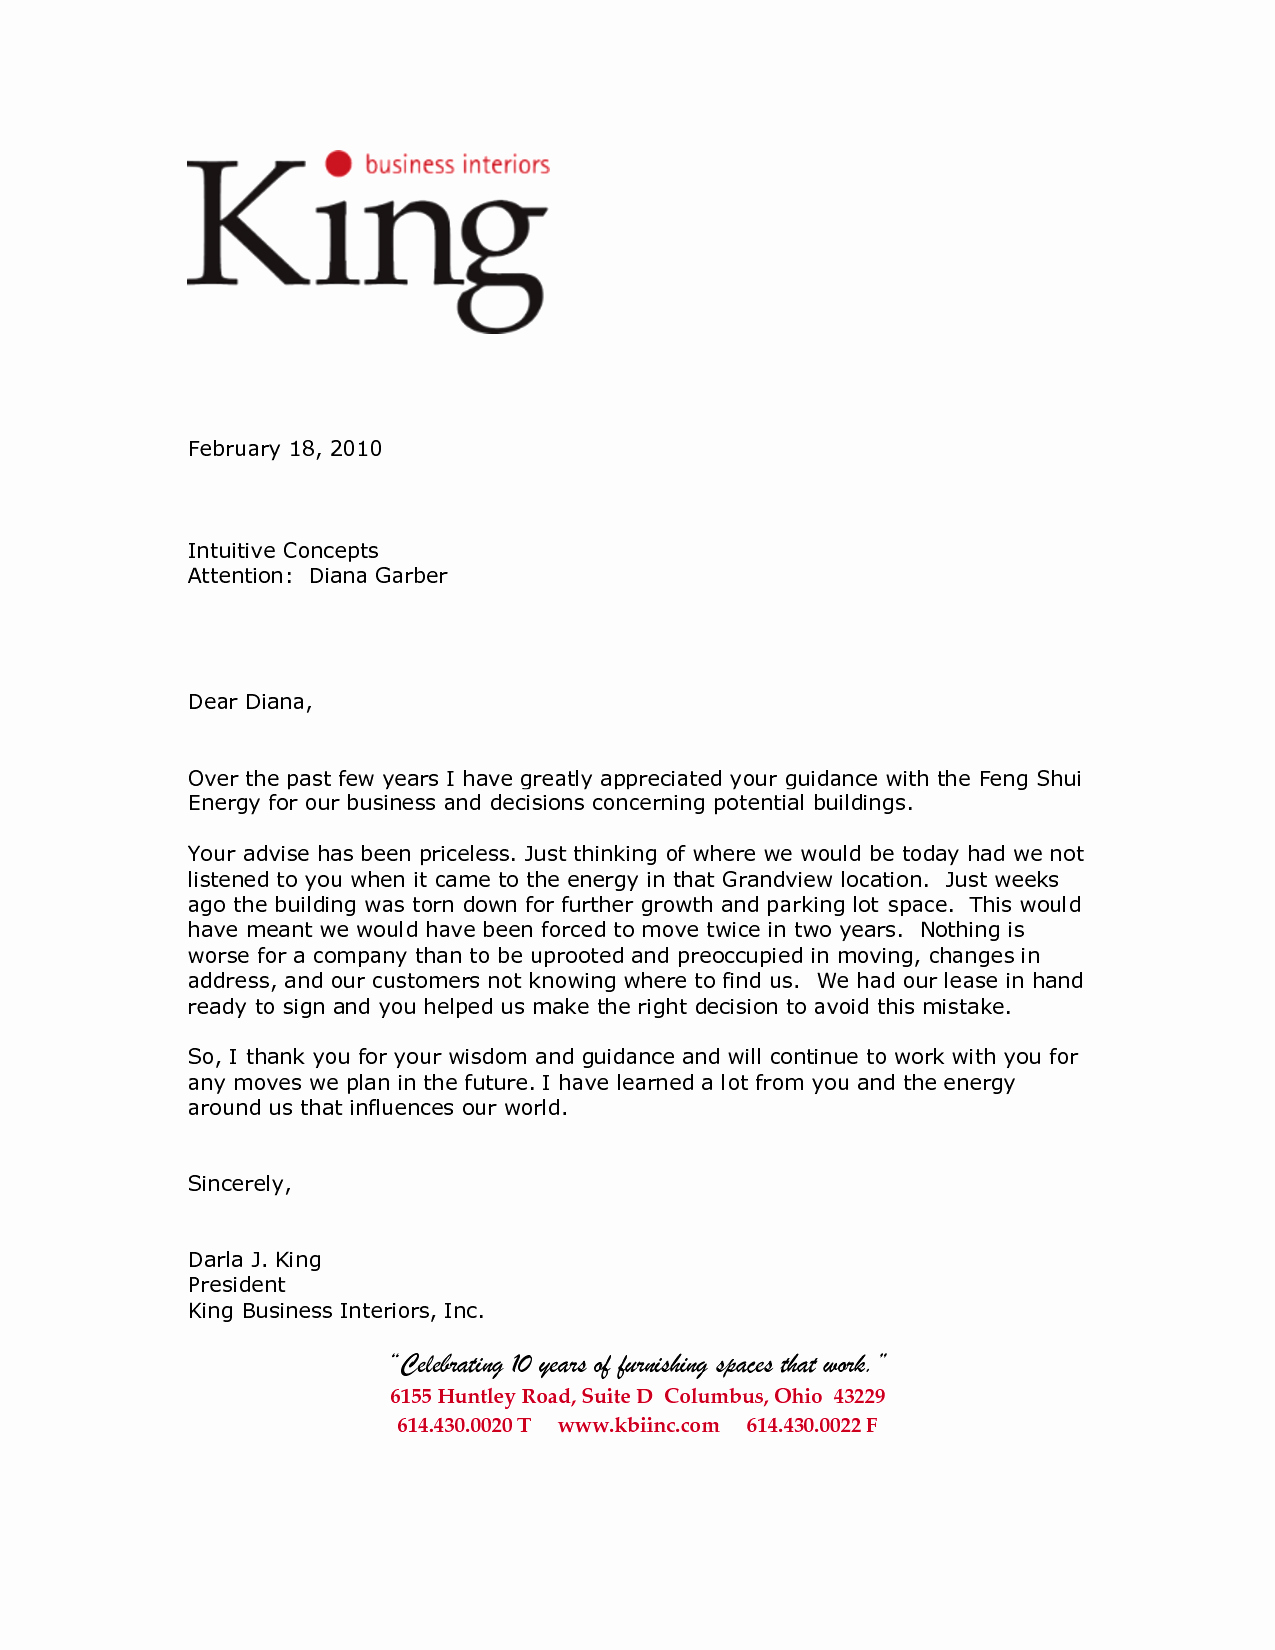 Template Of A Business Letter Awesome Business Reference Letter Template Mughals